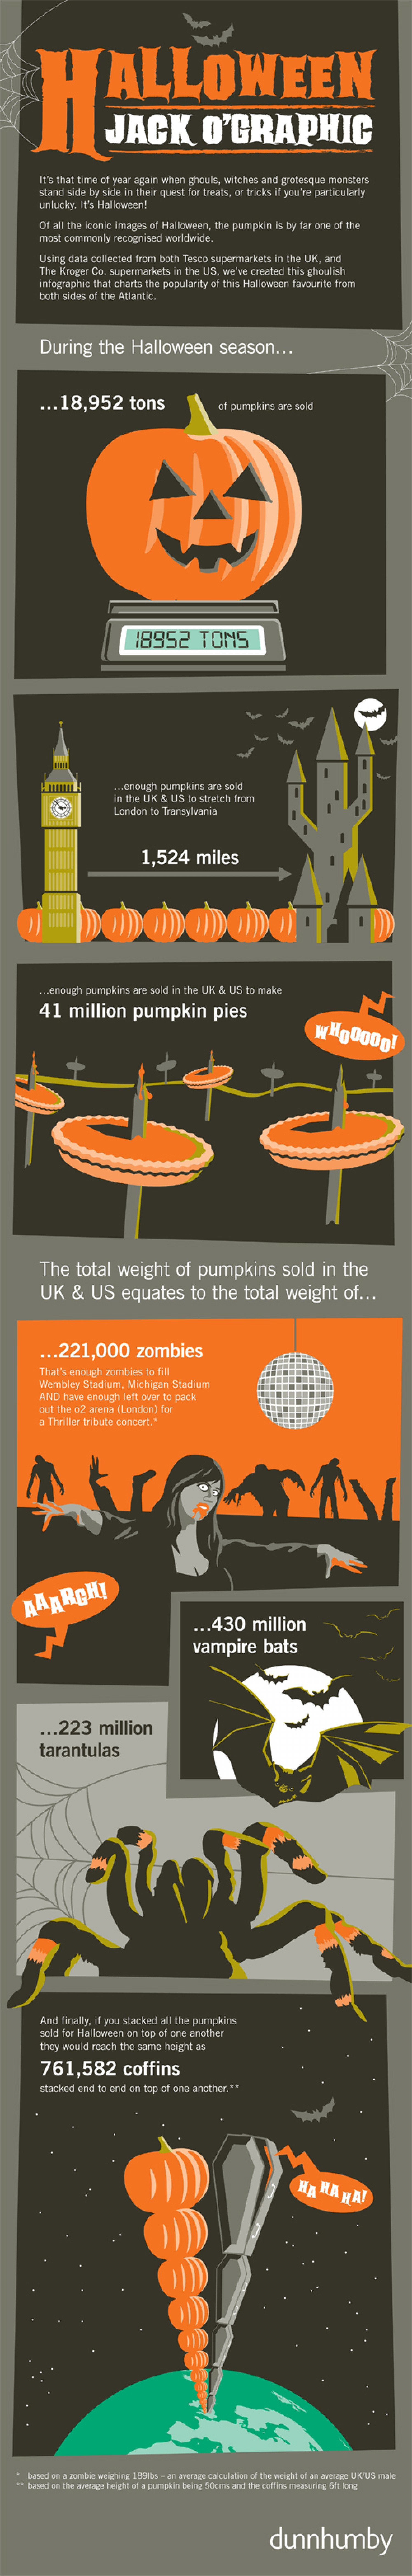 this-halloween-learn-more-about-the-pumpkins